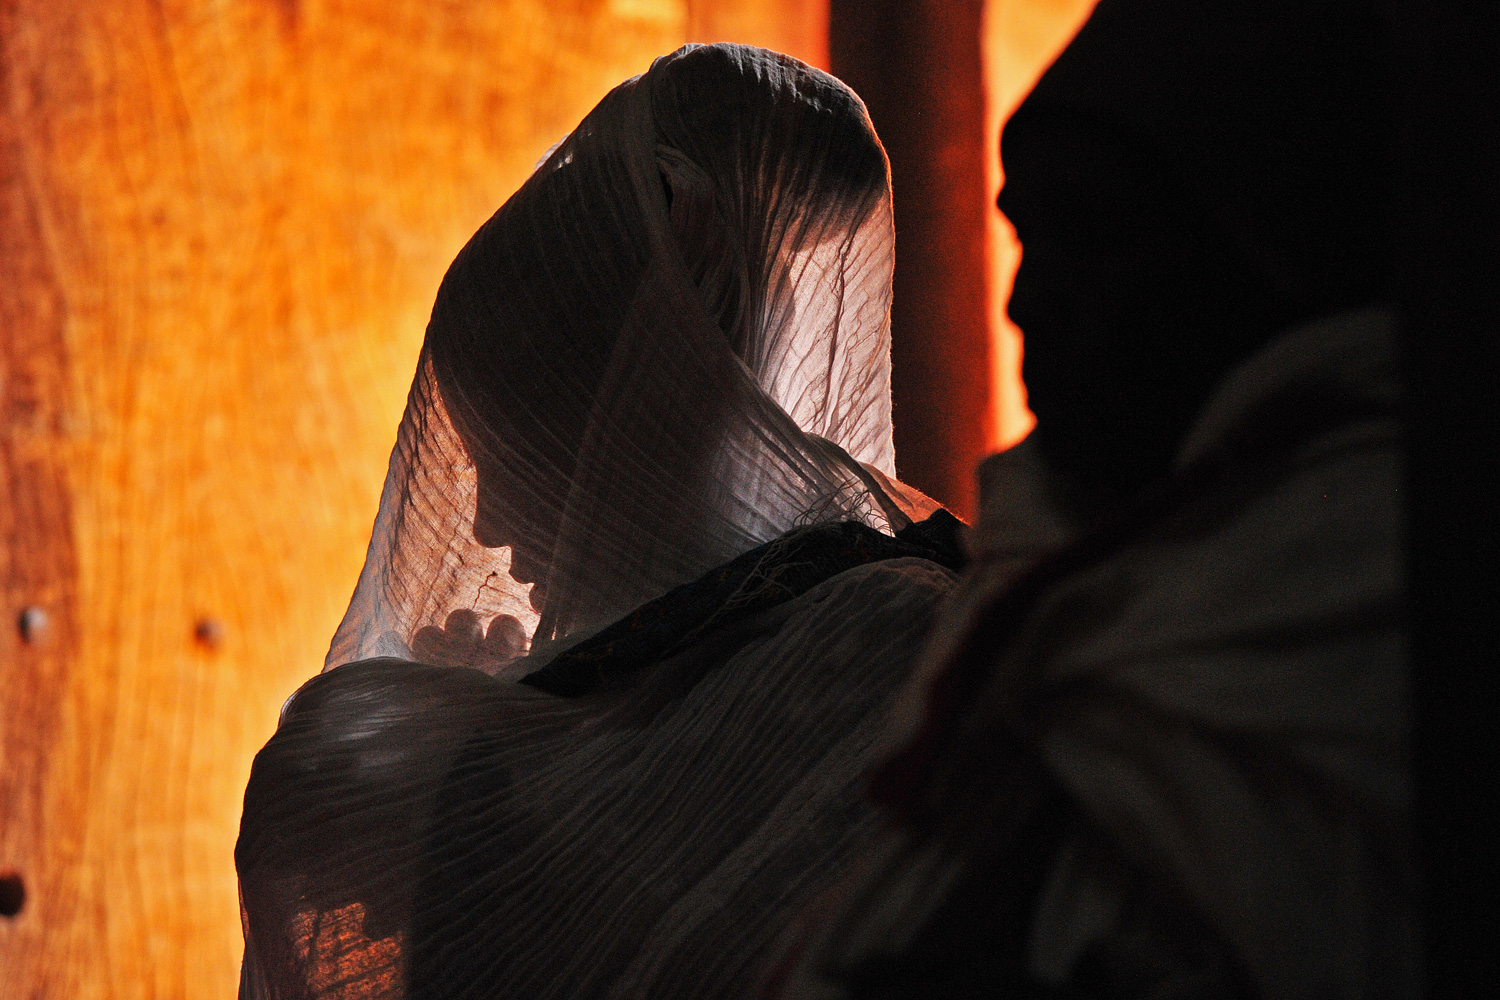 January 19, 2012. An Ethiopian Orthodox Christian pilgrim is pictured at a mass before the annual festival of Timkat in Lalibela, Ethiopia, which celebrates the Baptism of Jesus in the Jordan River.